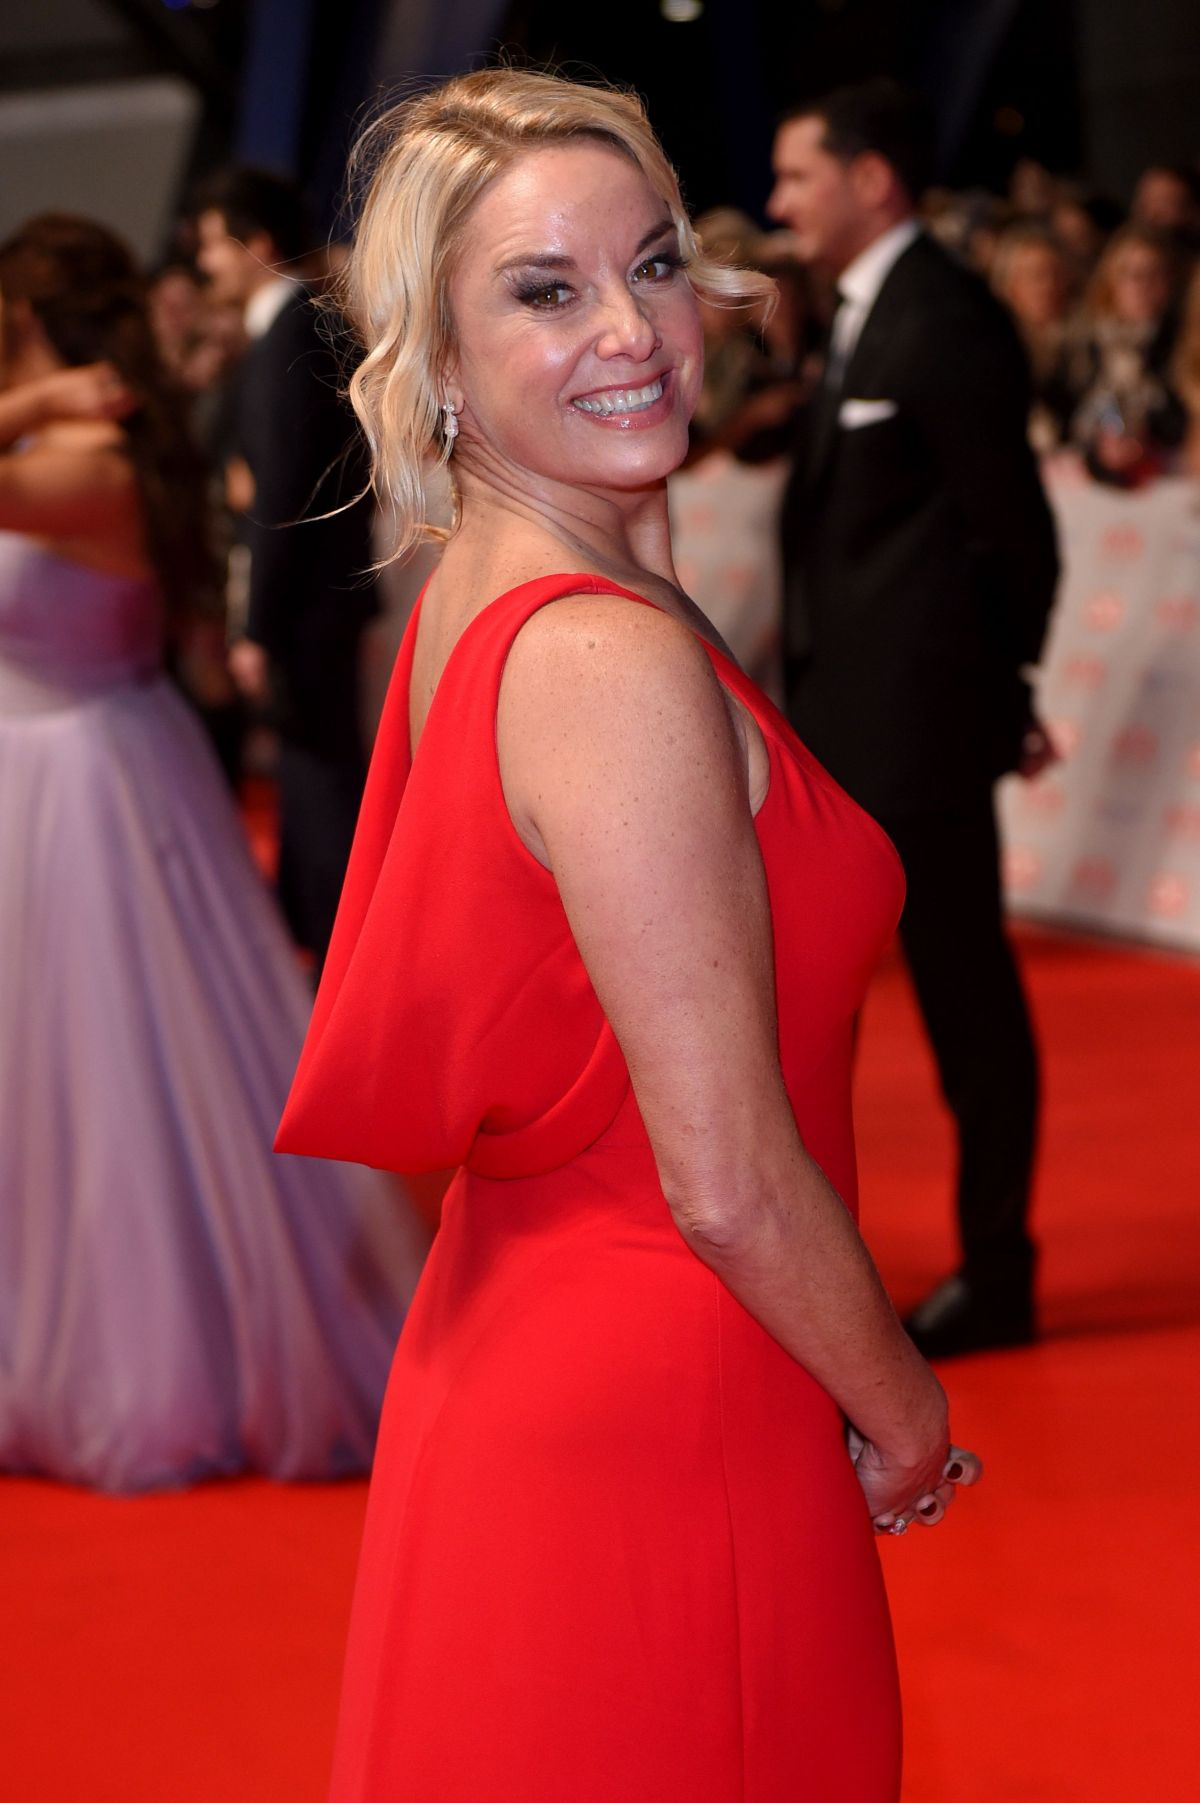 tamzin outhwaite - photo #5